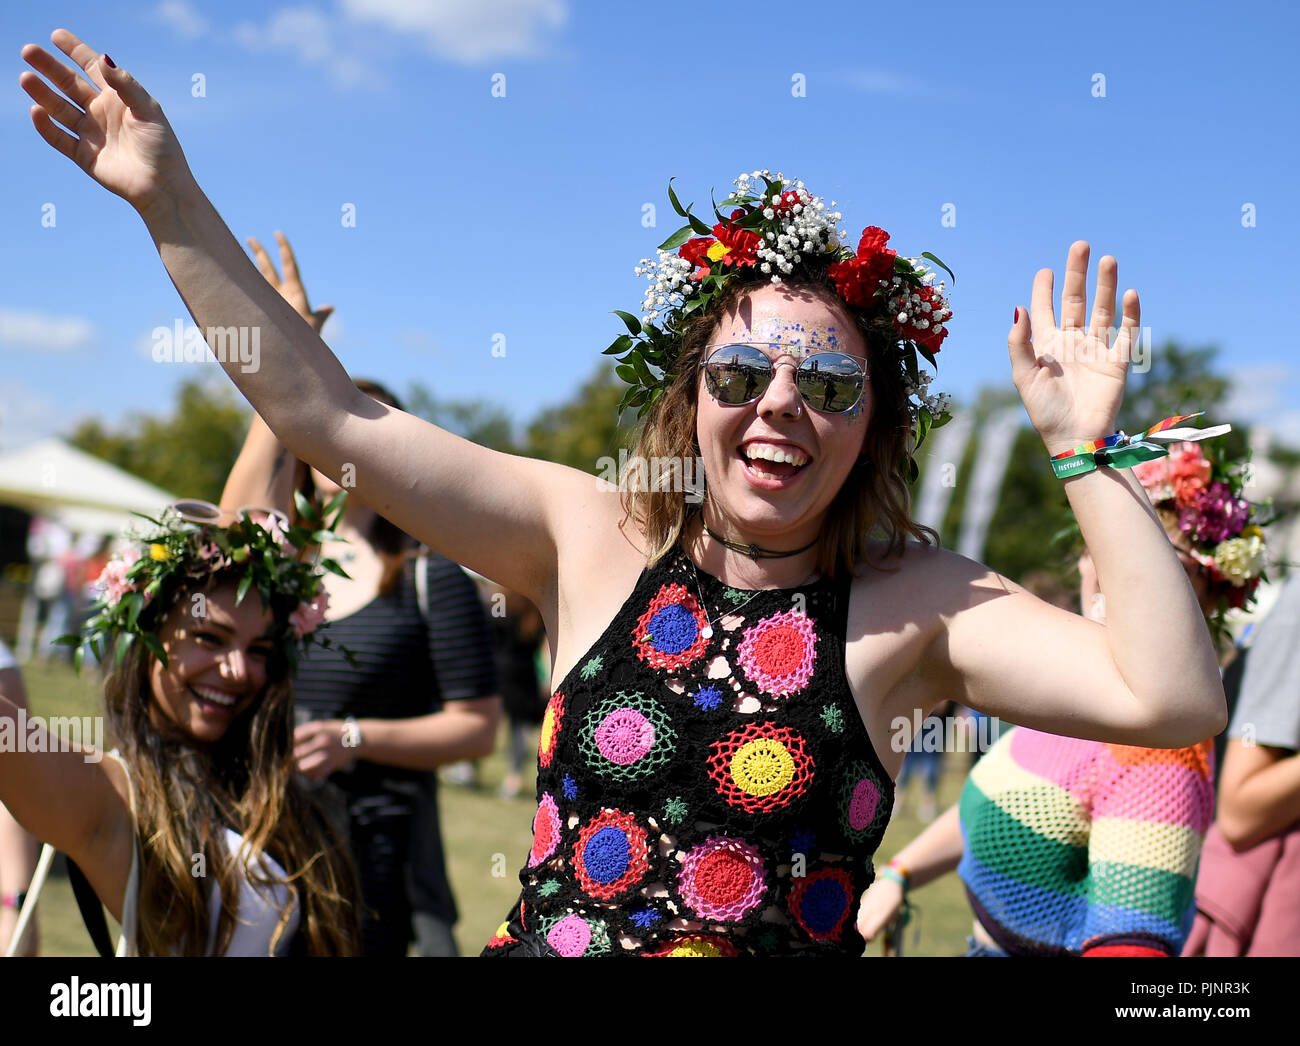 Berlin, Germany. 08th Sep, 2018. Ashley dances at the two-day music festival Lollapalooza on the grounds of the Olympic Park. Credit: Britta Pedersen/dpa/Alamy Live News - Stock Image